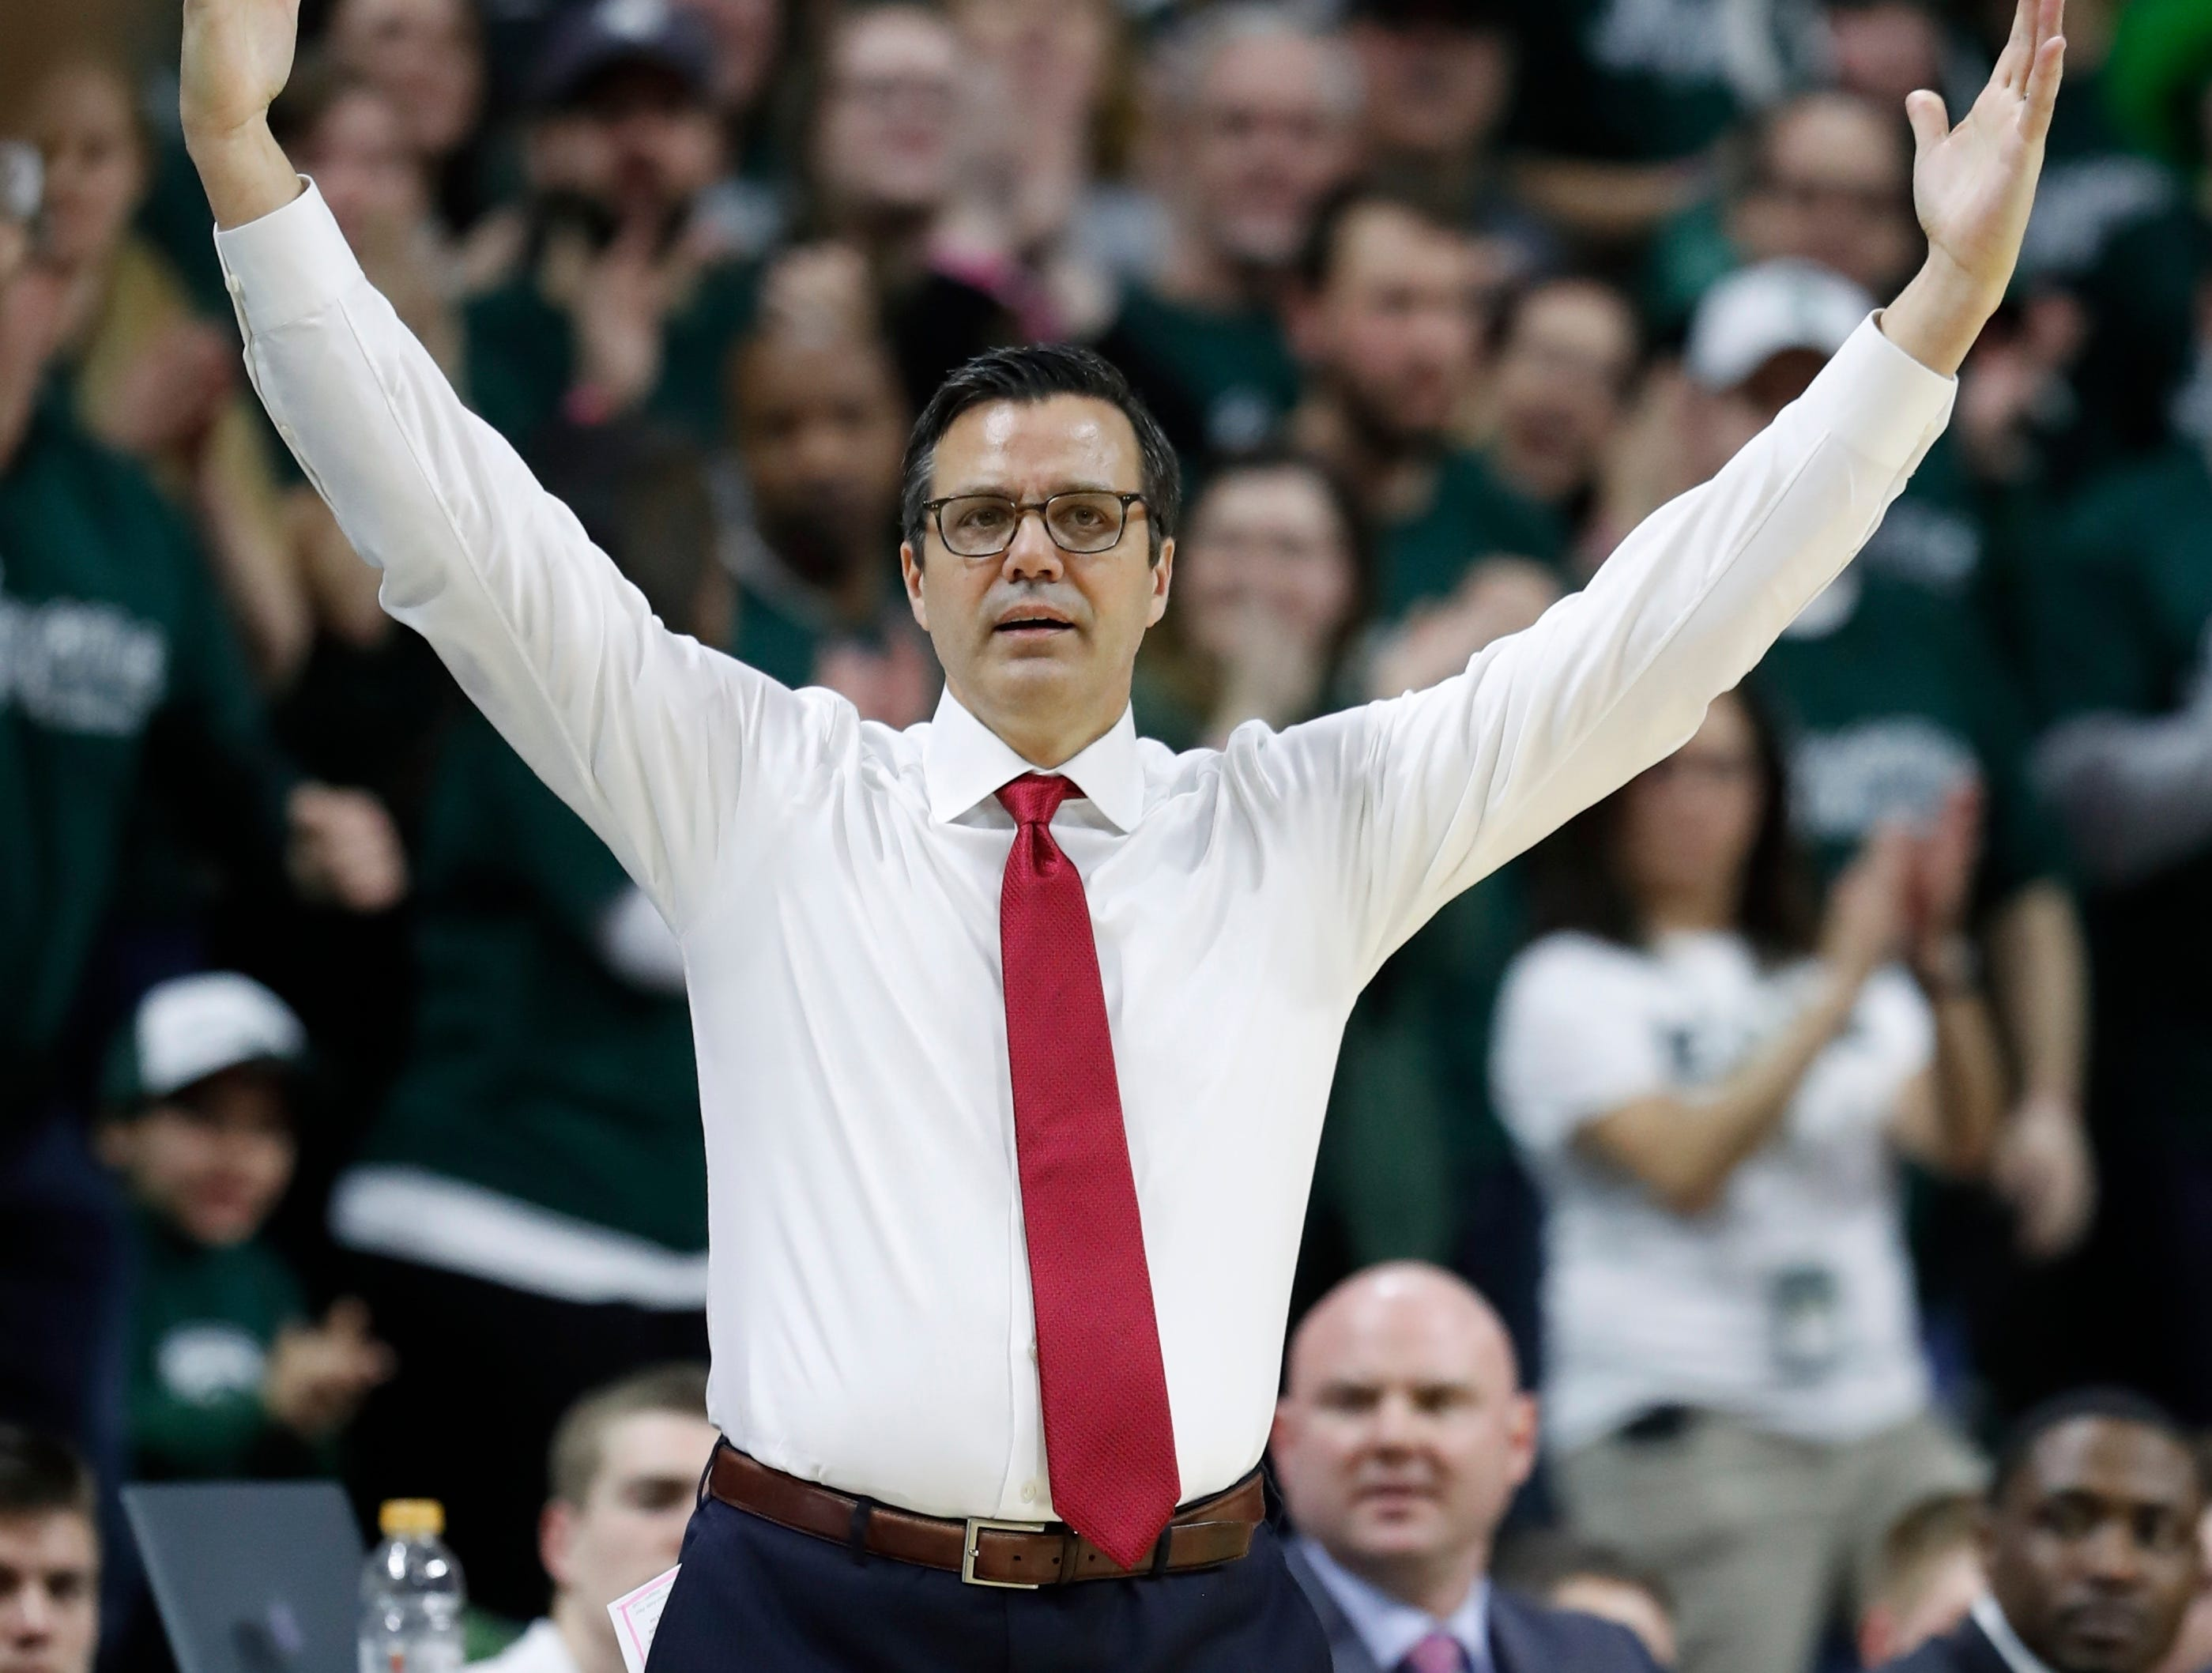 Nebraska head coach Tim Miles on the sidelines during the first half of an NCAA college basketball game against Michigan State, Tuesday, March 5, 2019, in East Lansing, Mich. .